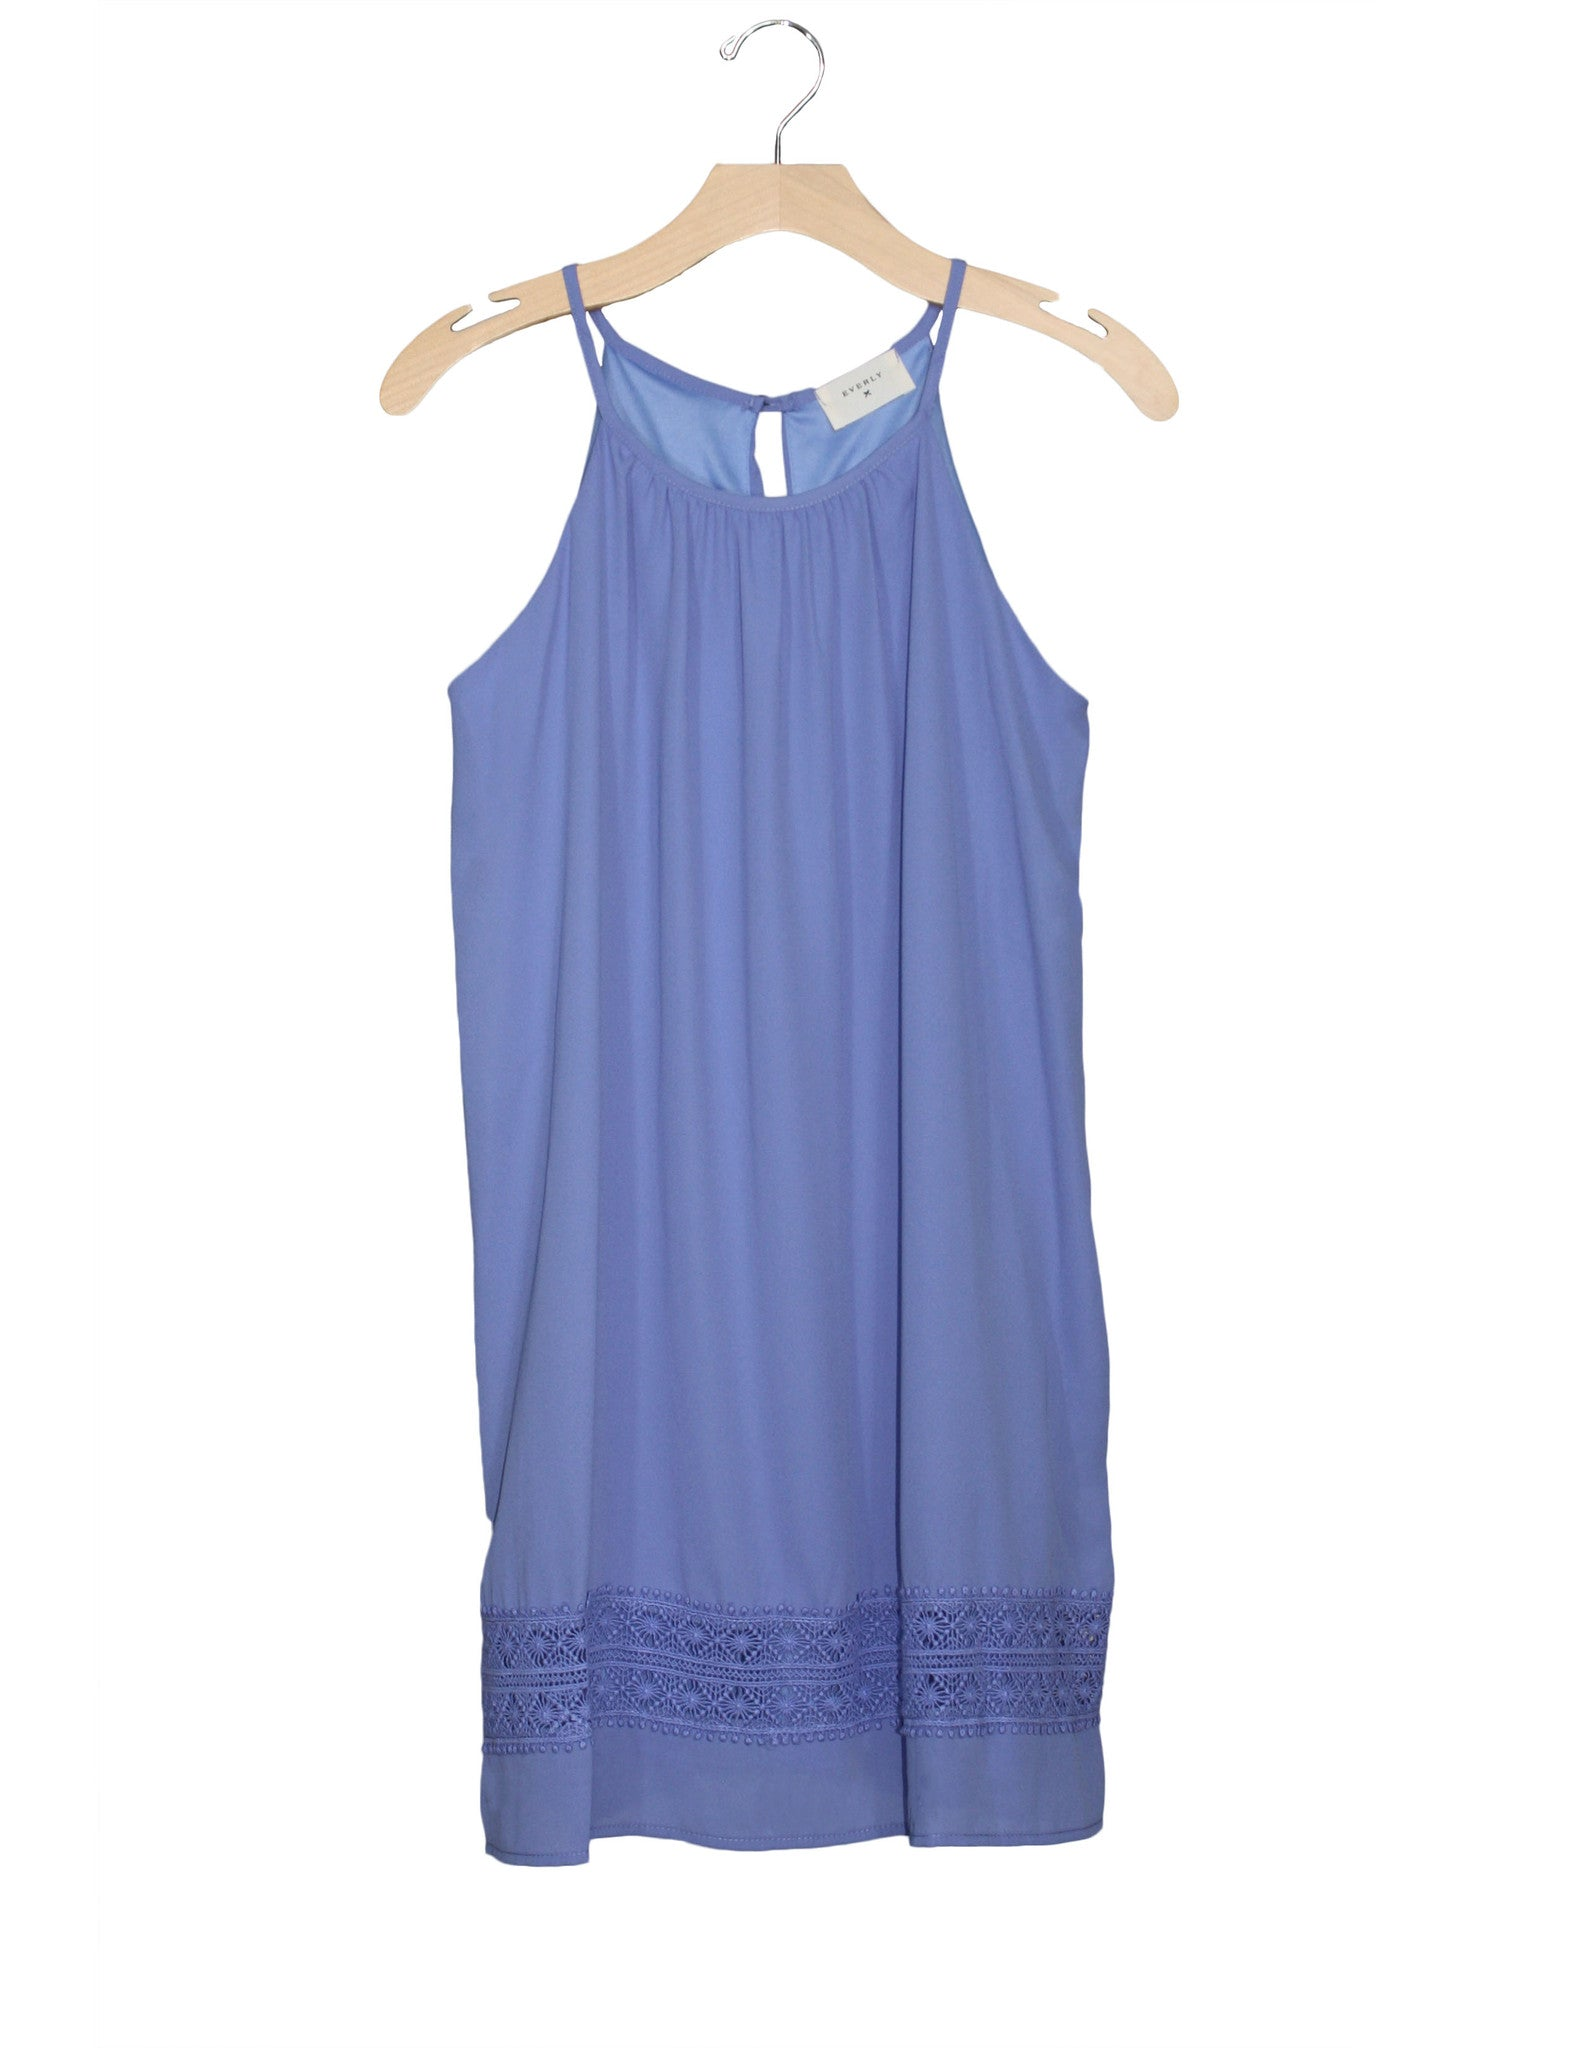 Porcelain Blue Shift Dress / Ethical Fashion